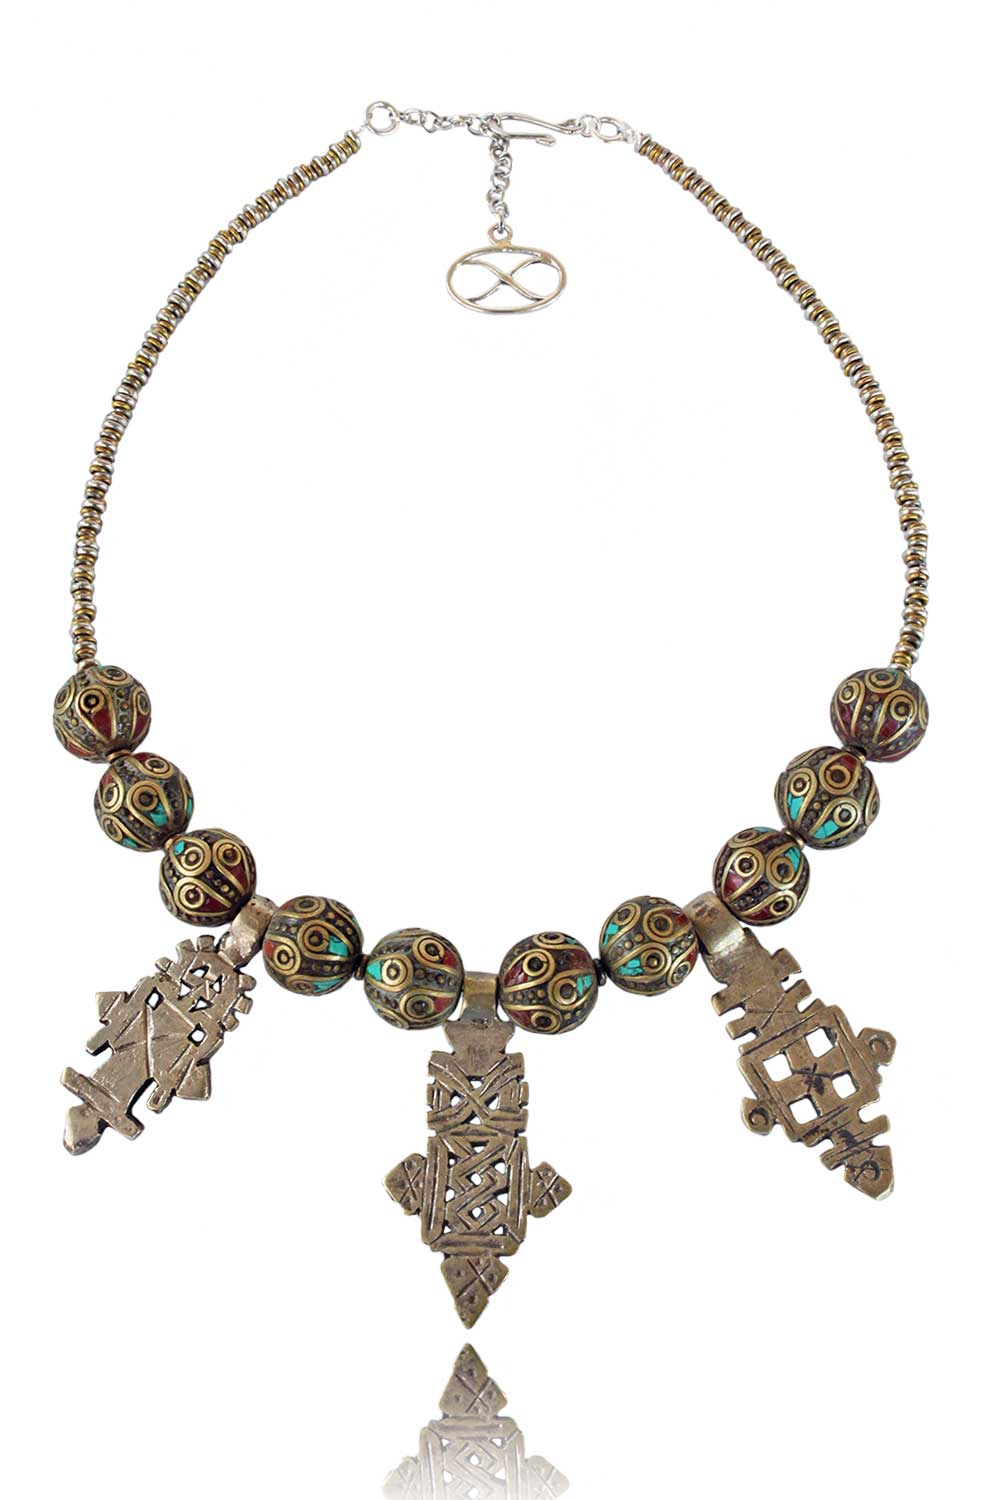 SHIKHAZURI-Queen of Sheba-Necklace.jpg